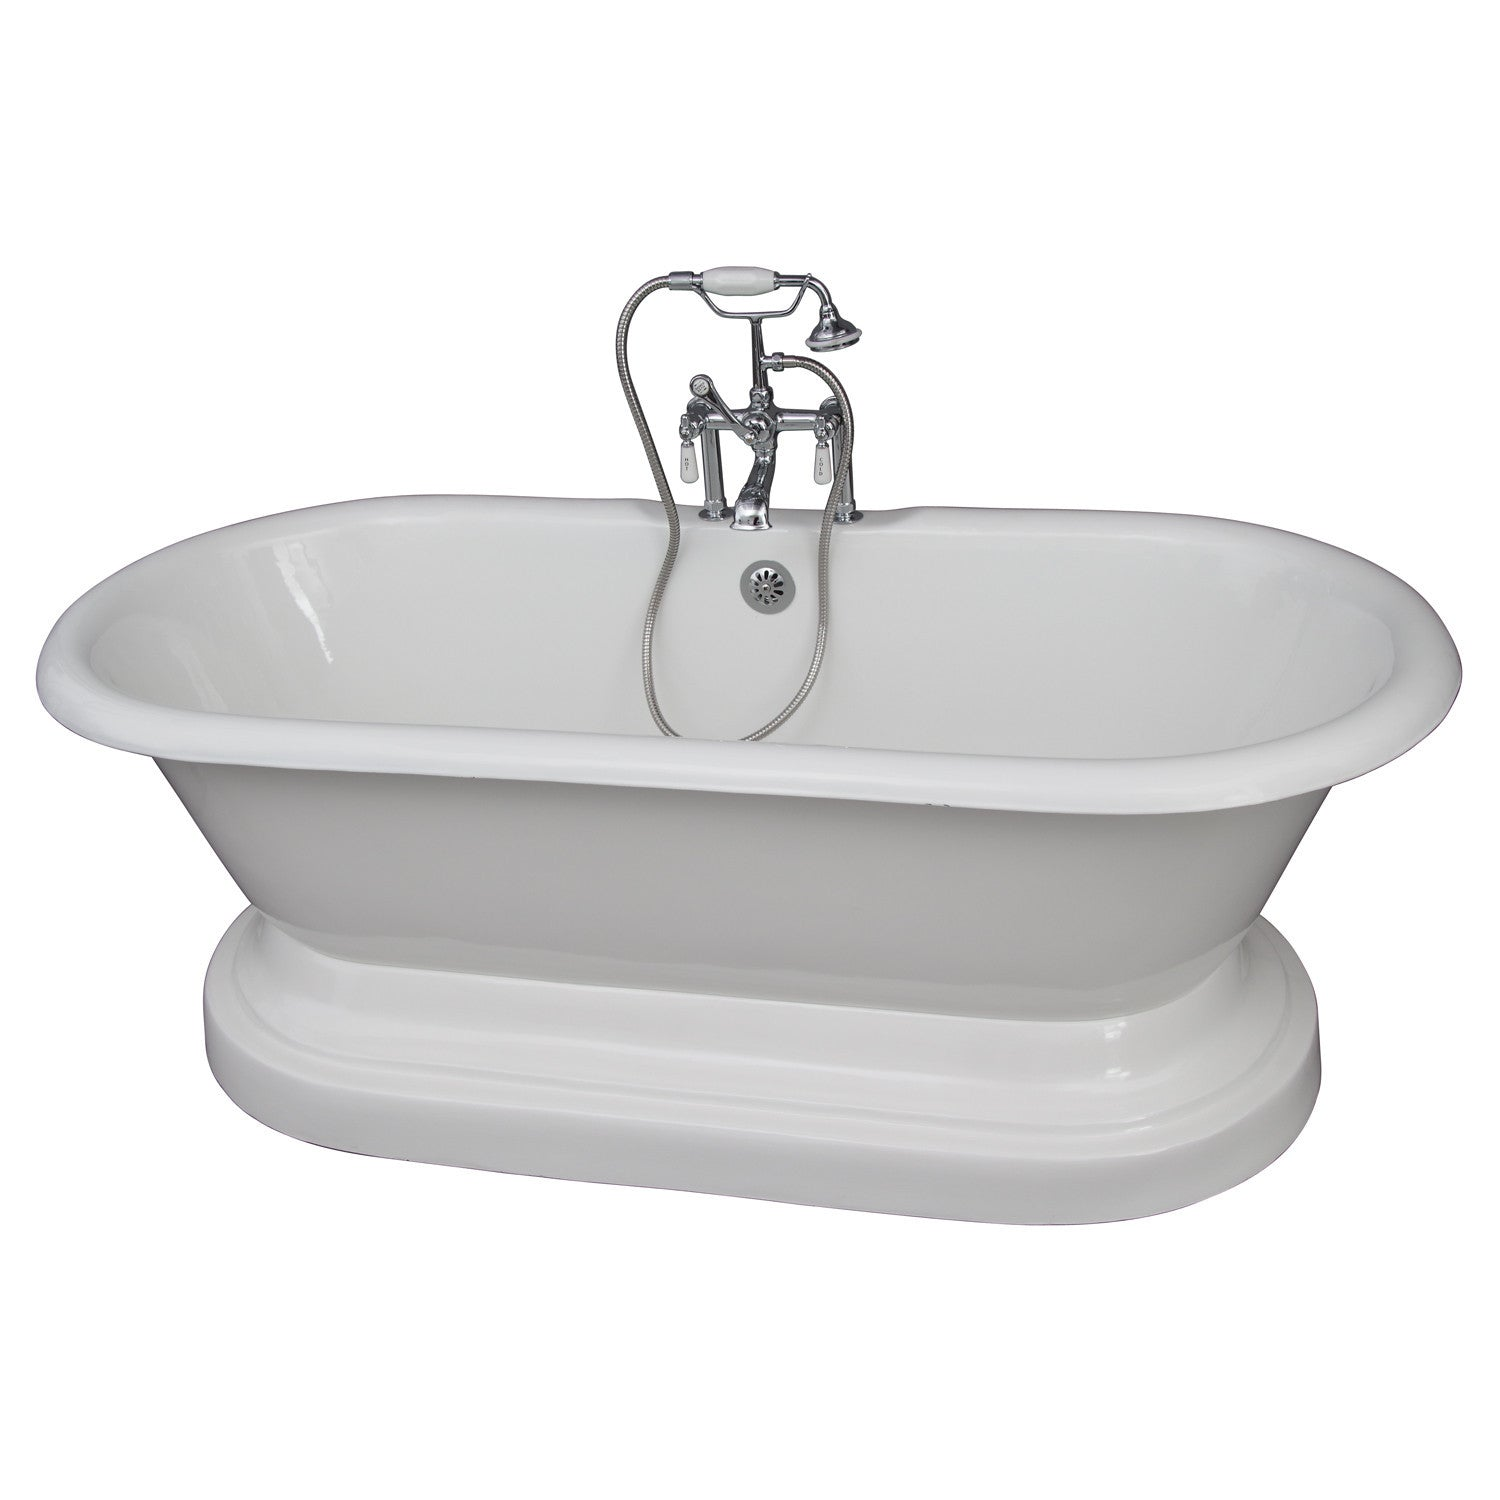 Barclay TKCTDRHB-CP1 Duet 67″ Cast Iron Double Roll Top Tub Kit with ...